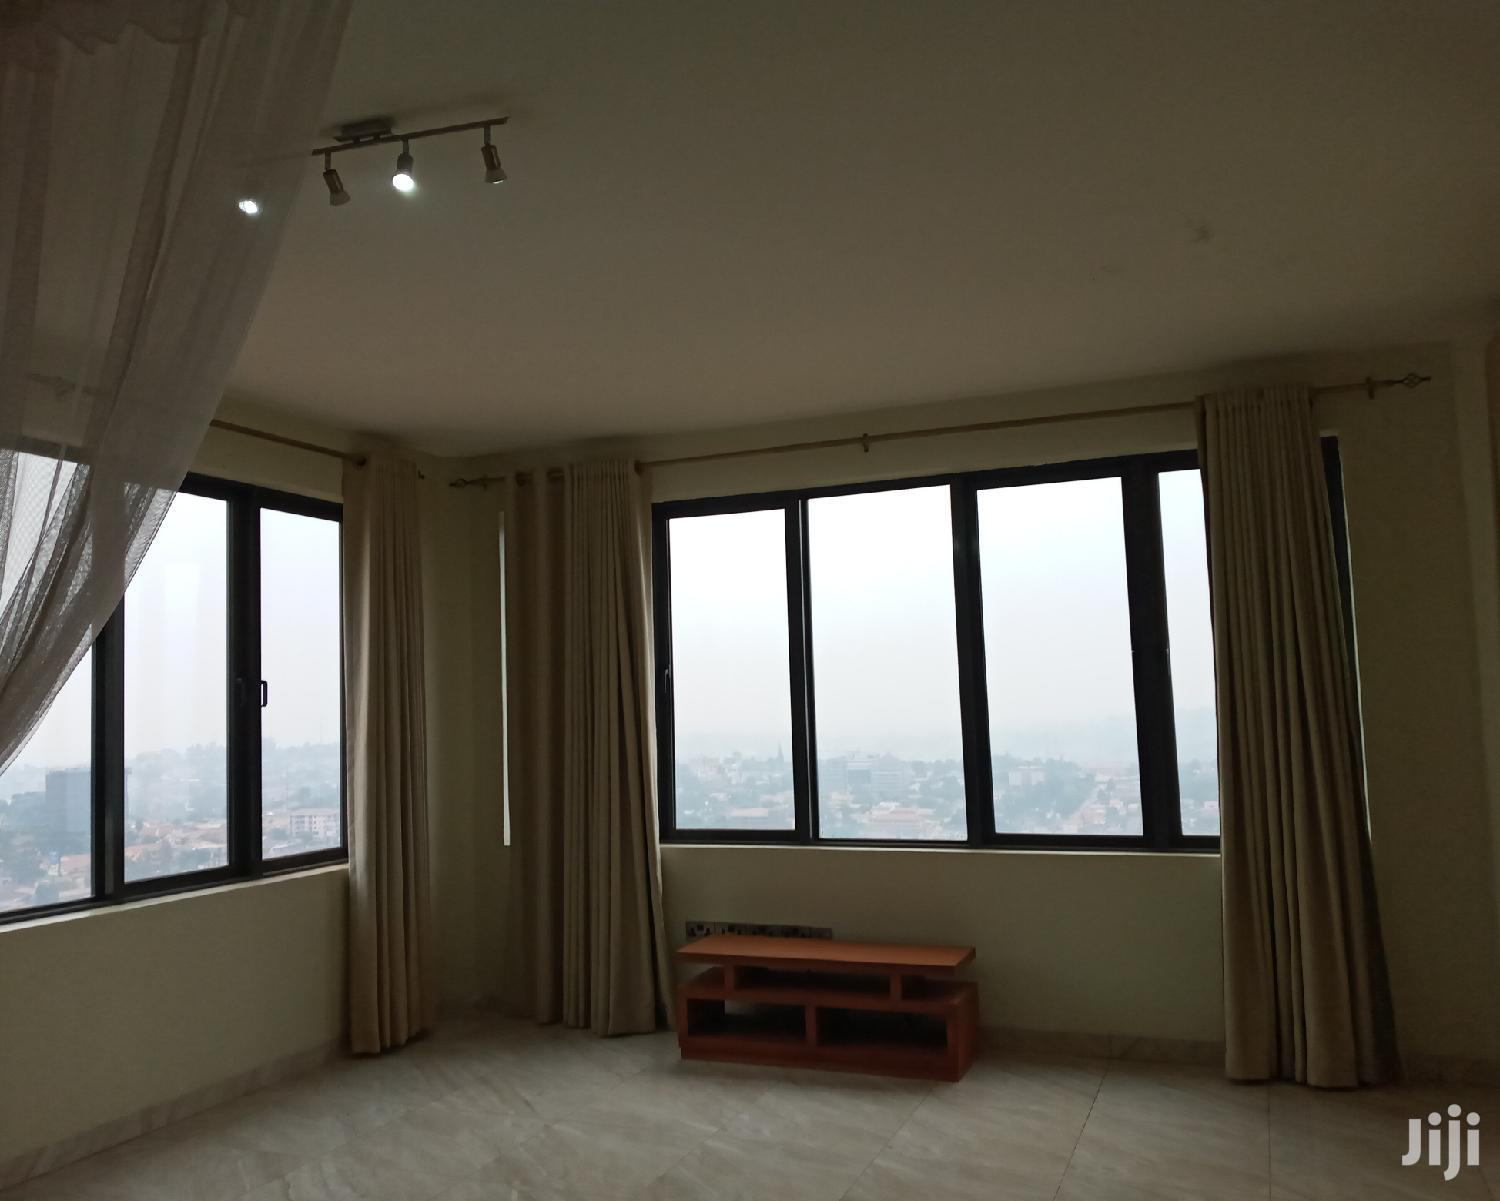 Four Bedroom Apartment In Naguru For Rent | Houses & Apartments For Rent for sale in Kampala, Central Region, Uganda